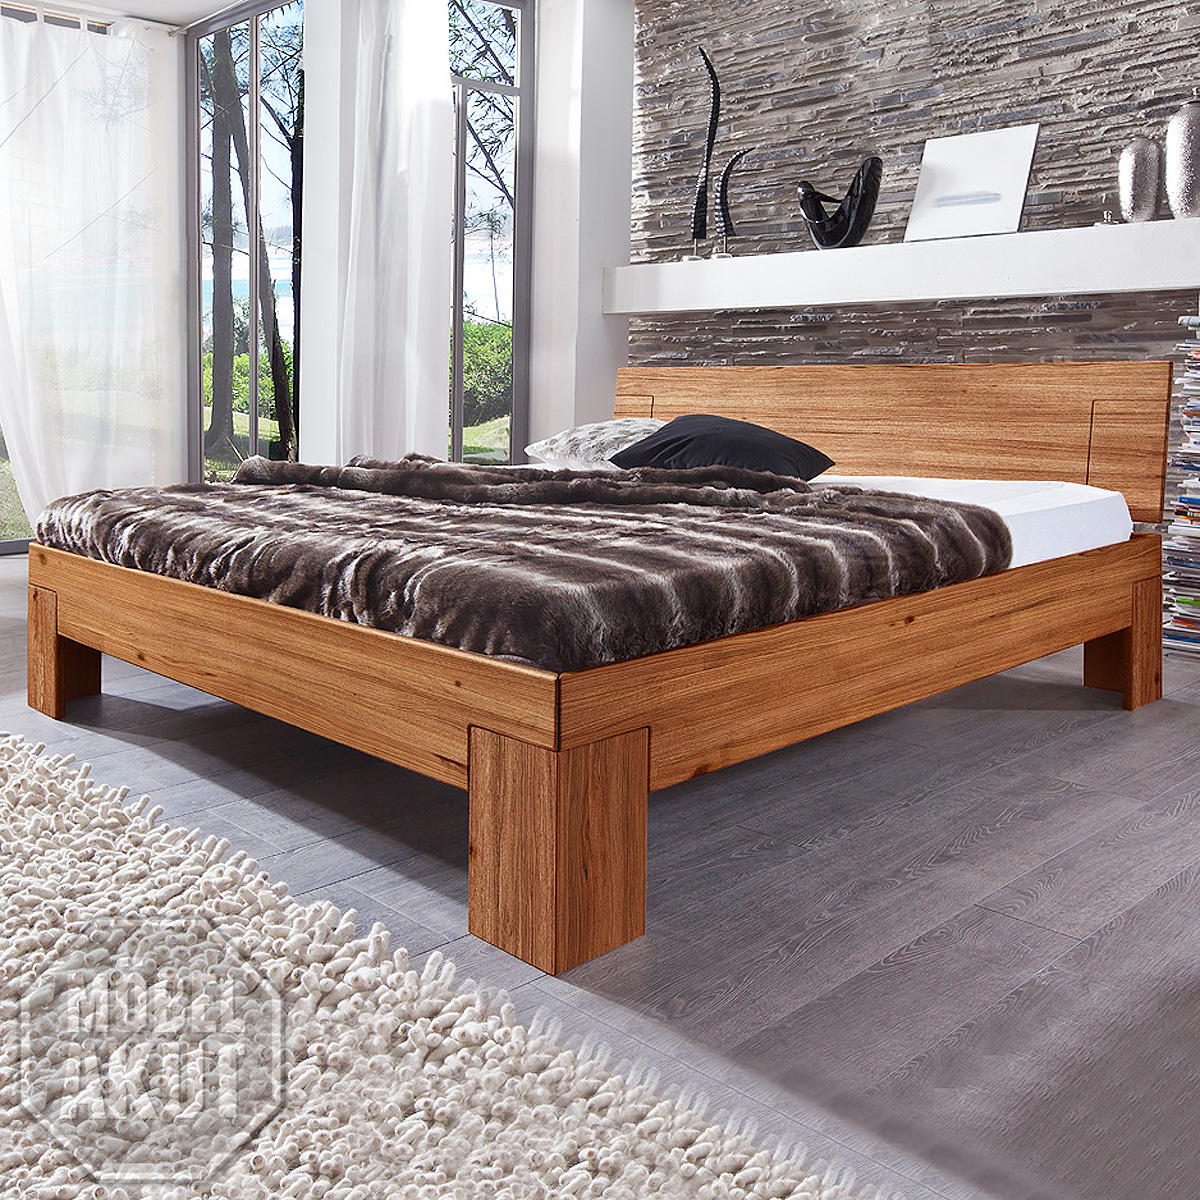 bett sara futonbett bettgestell in wild eiche massiv natur ge lt 90x200 cm ebay. Black Bedroom Furniture Sets. Home Design Ideas